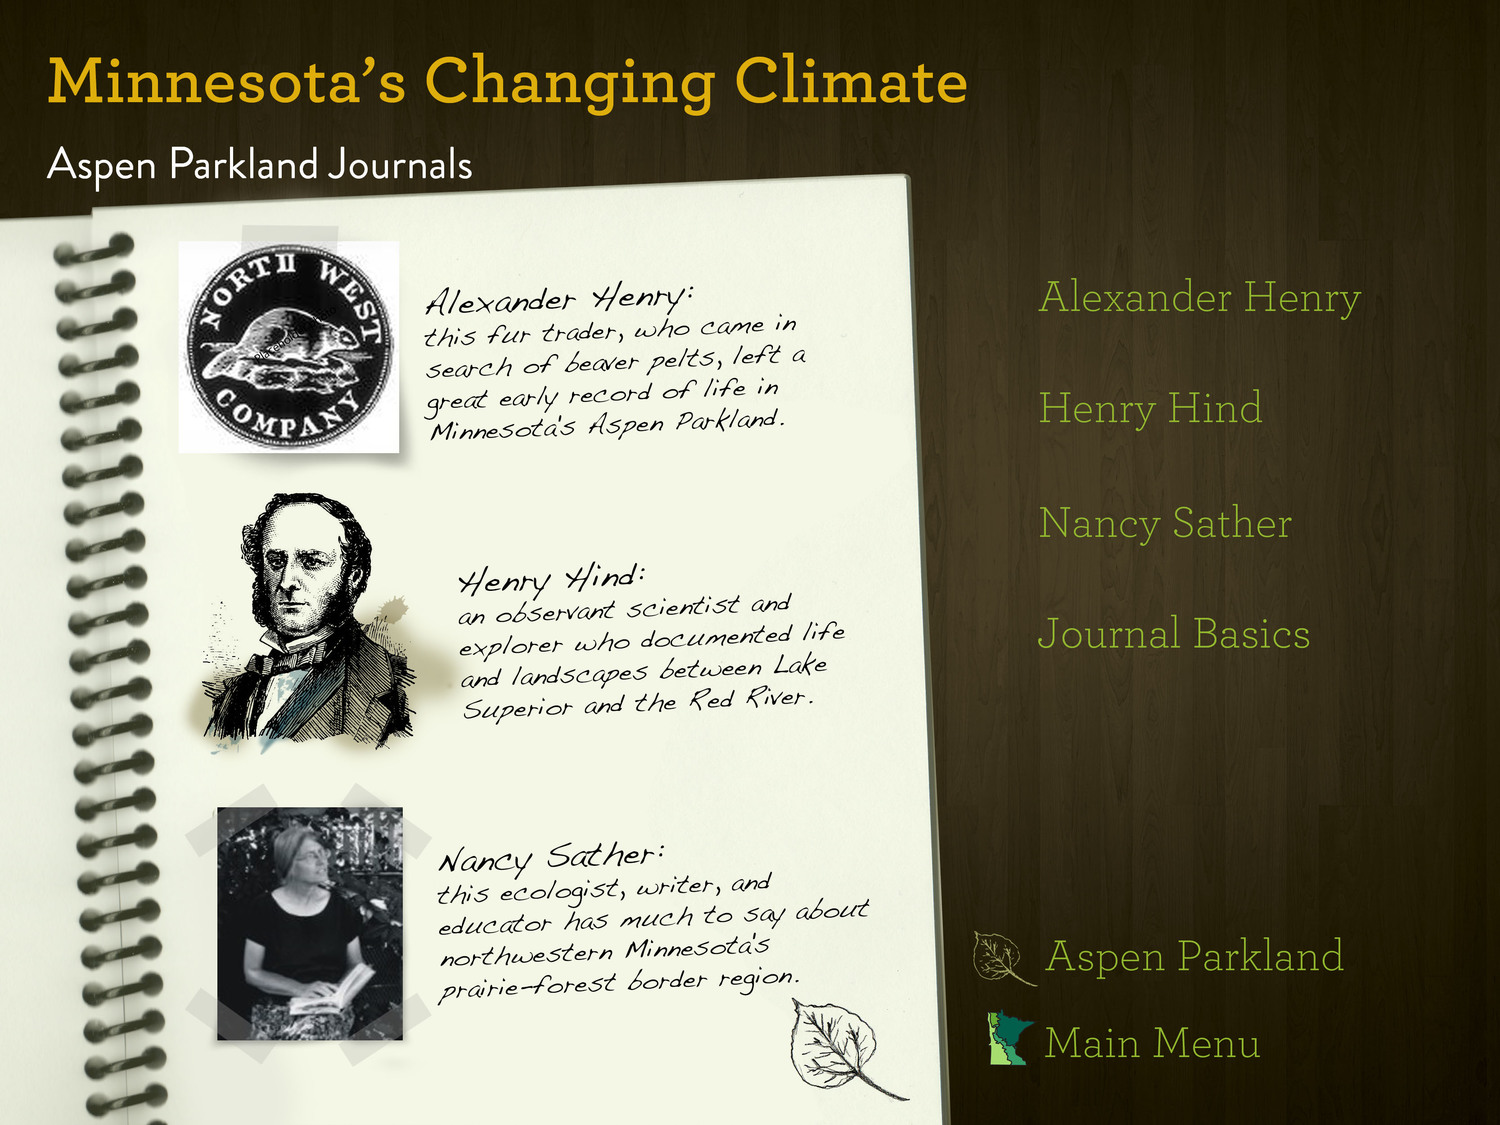 Minnesota's Changing Climate Multimedia Classroom - Aspen Parkland Journal entries